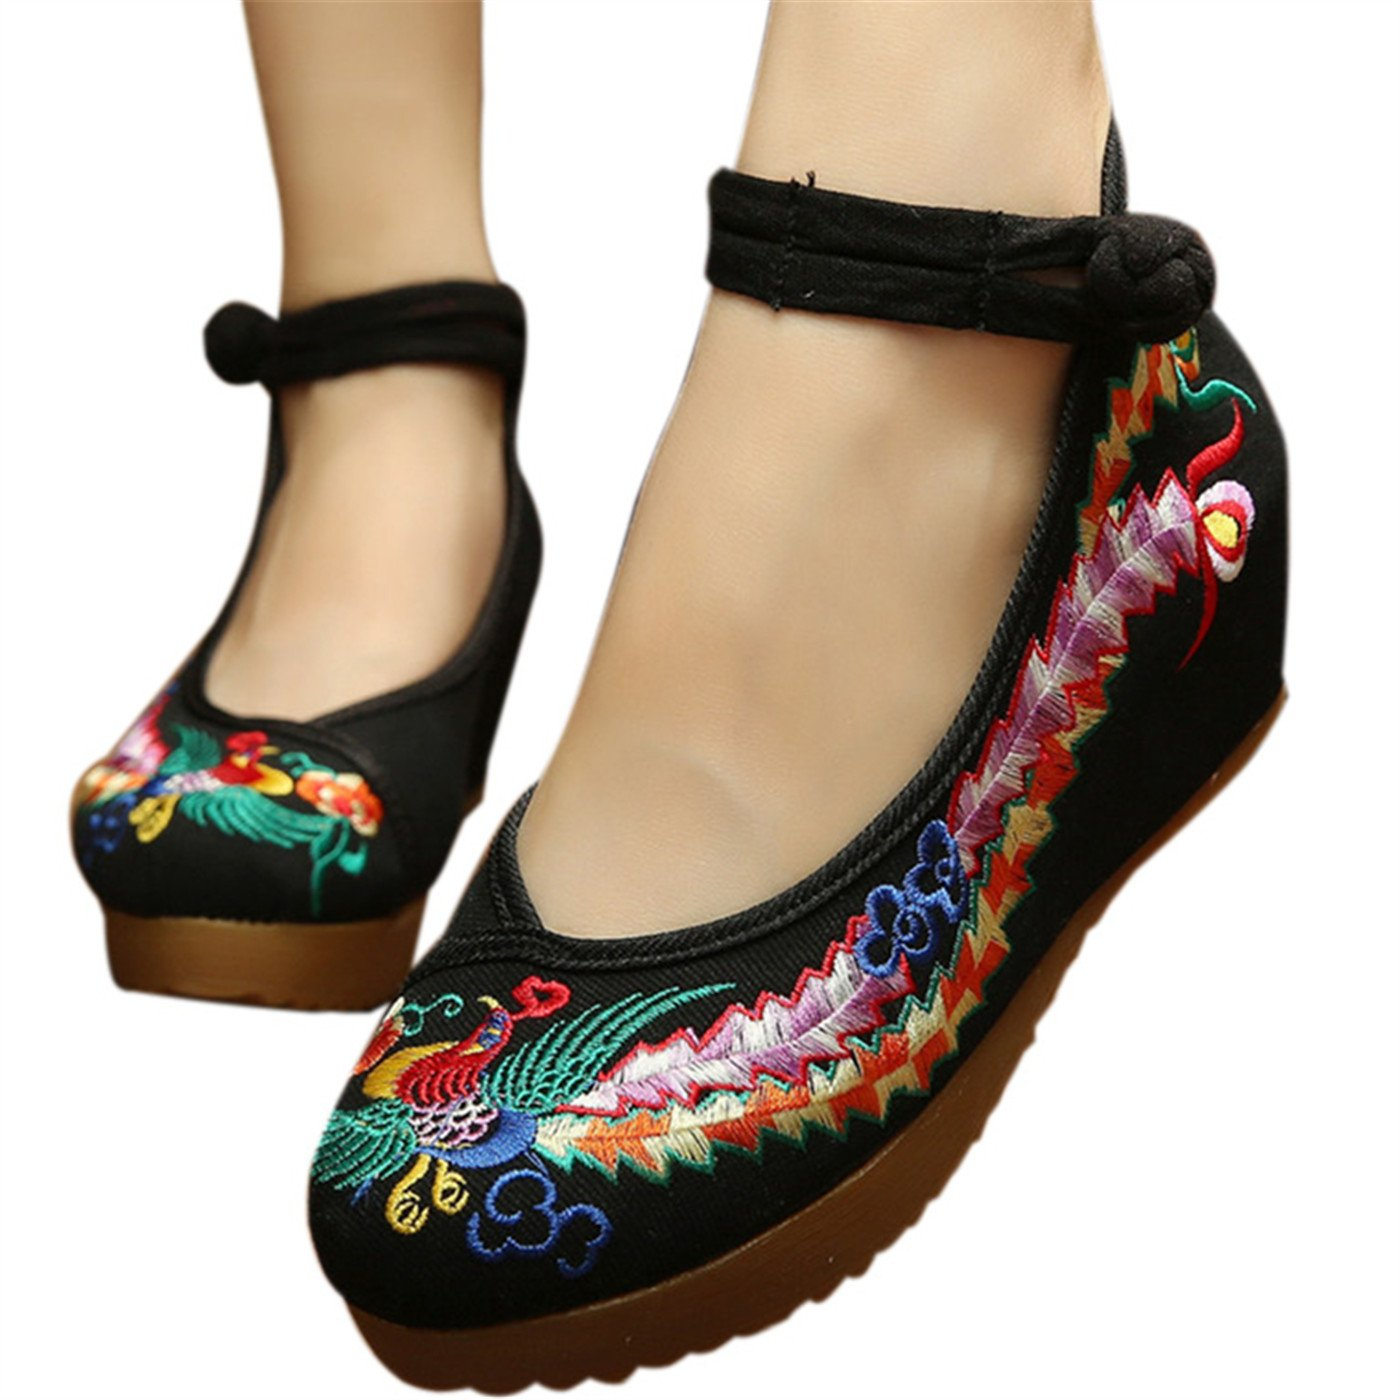 Qhome Women's Chinese Phoenix Embroidered Oxfords Rubber Sole Cheongsam Shoes Black 40 M EU